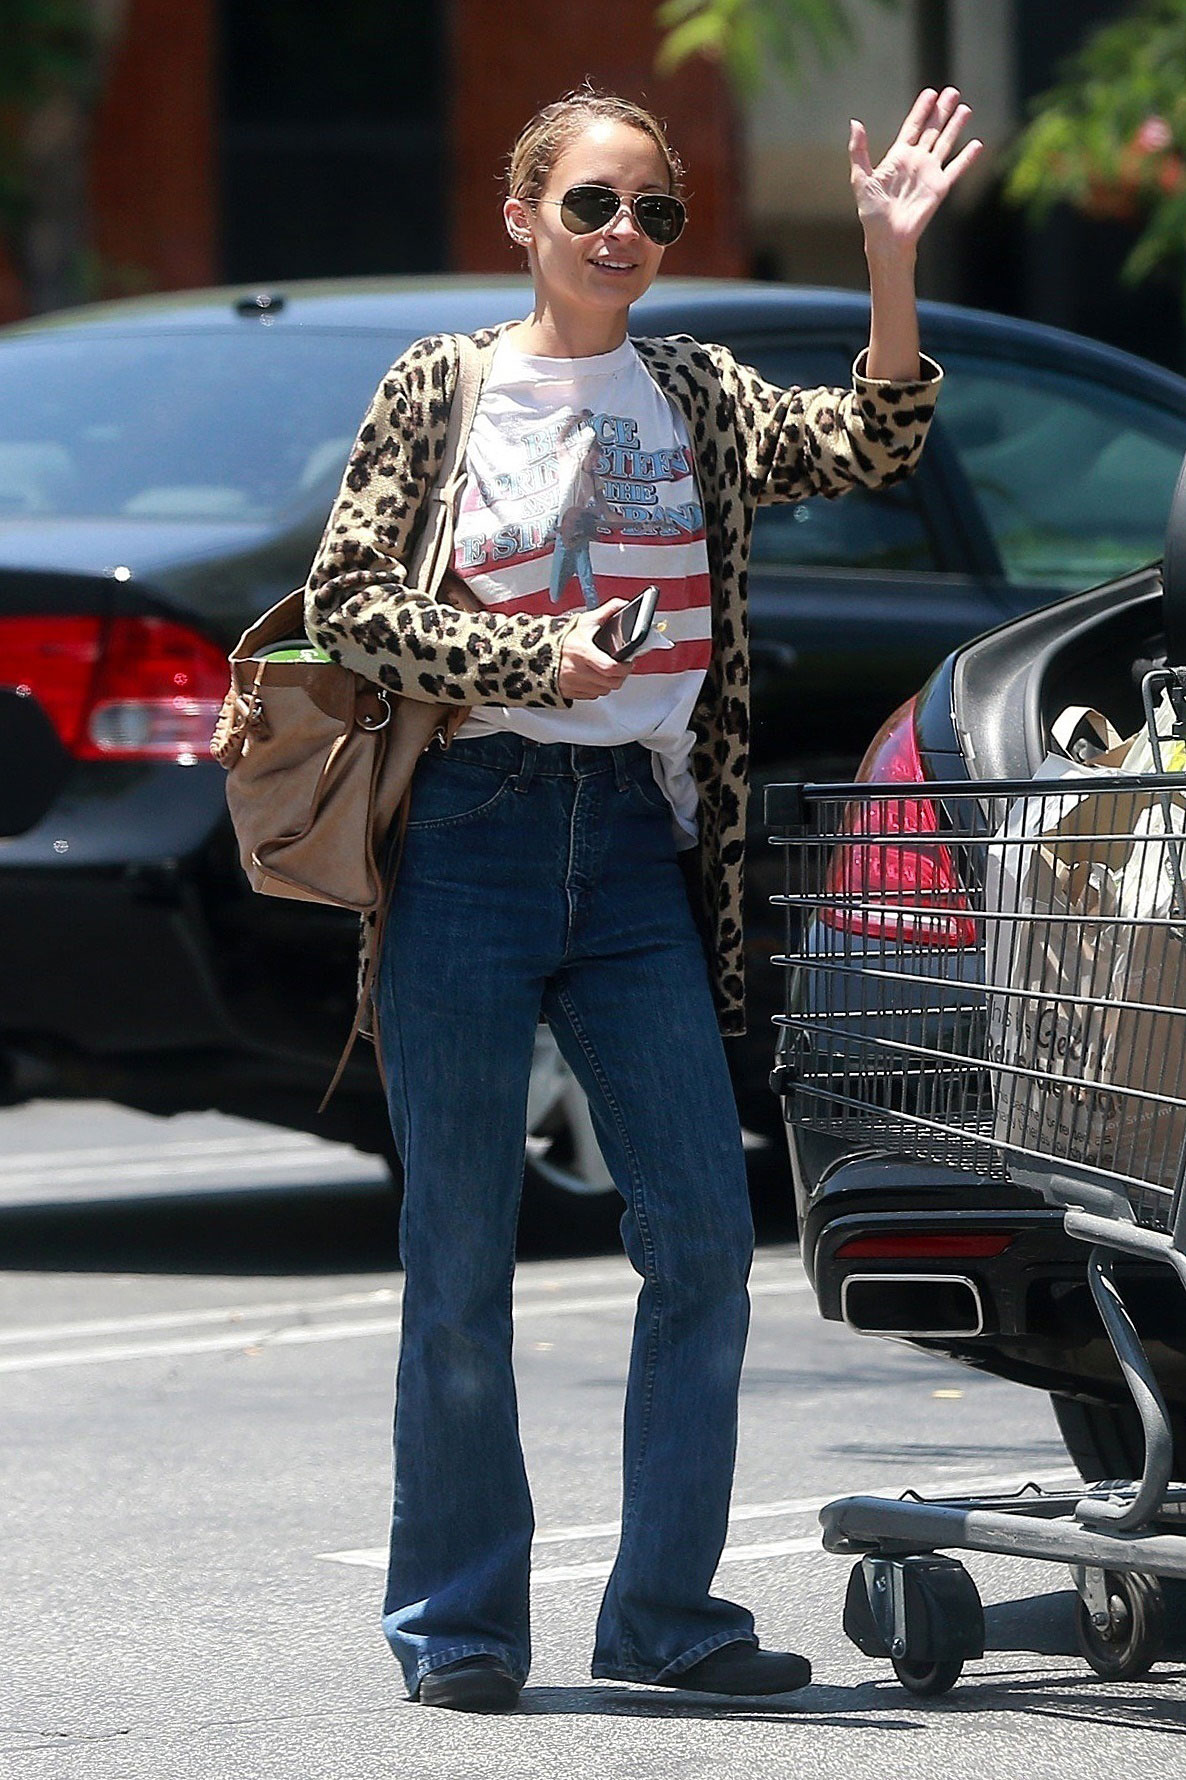 Nicole Richie wears a graphic tee, leopard cardigan and flare leg jeans while grocery shopping.